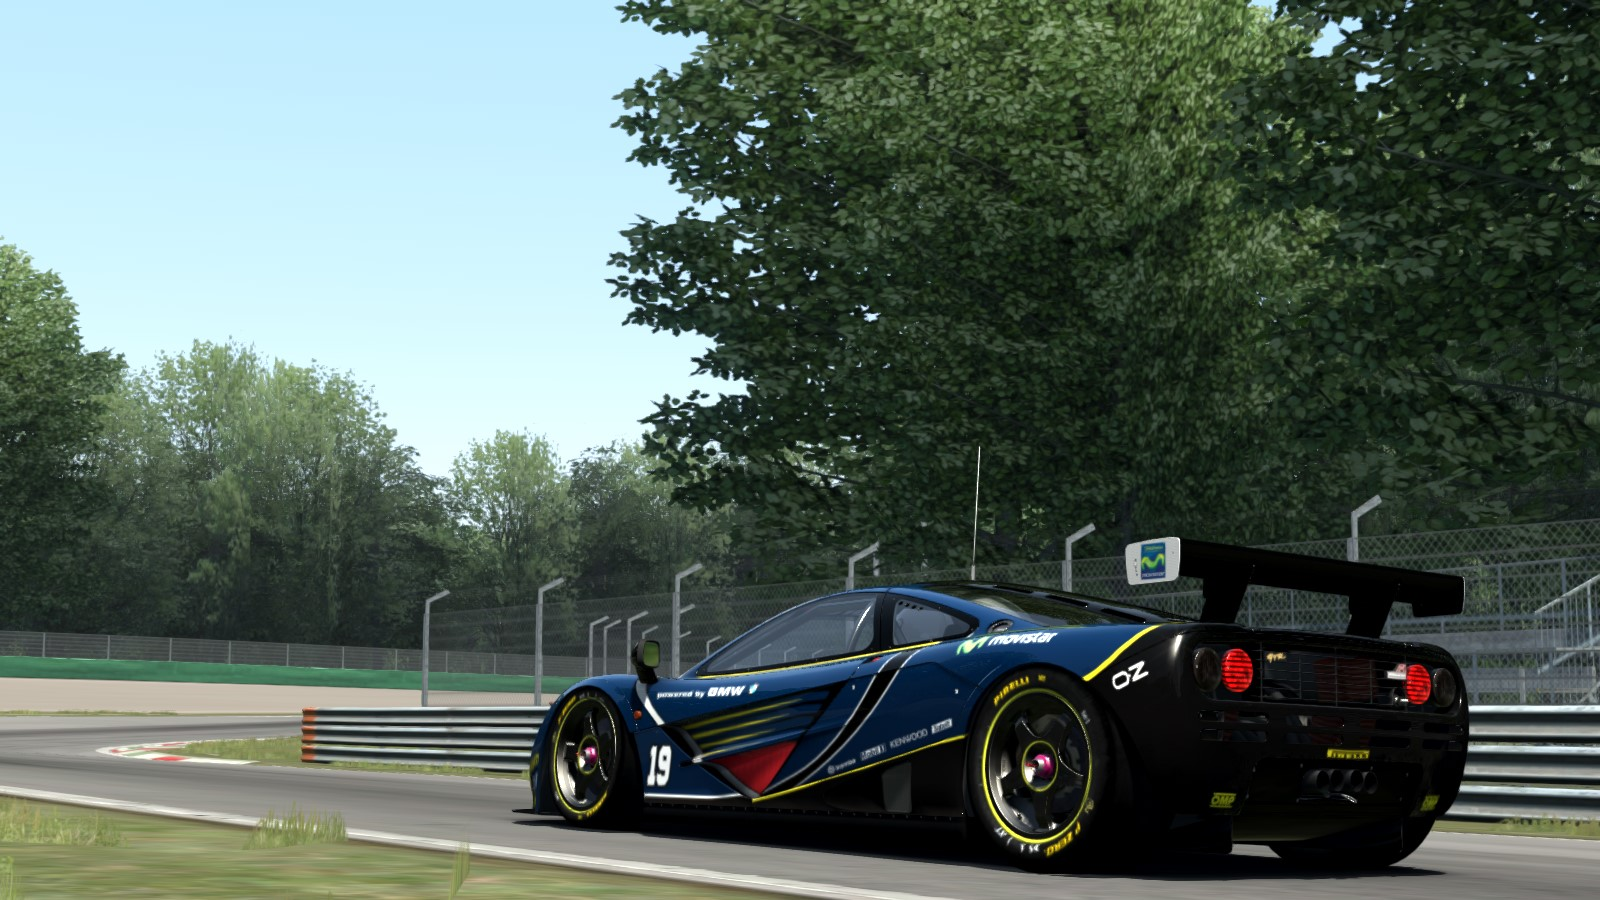 Screenshot_ks_mclaren_f1_gtr_monza_9-5-115-9-33-1.jpg